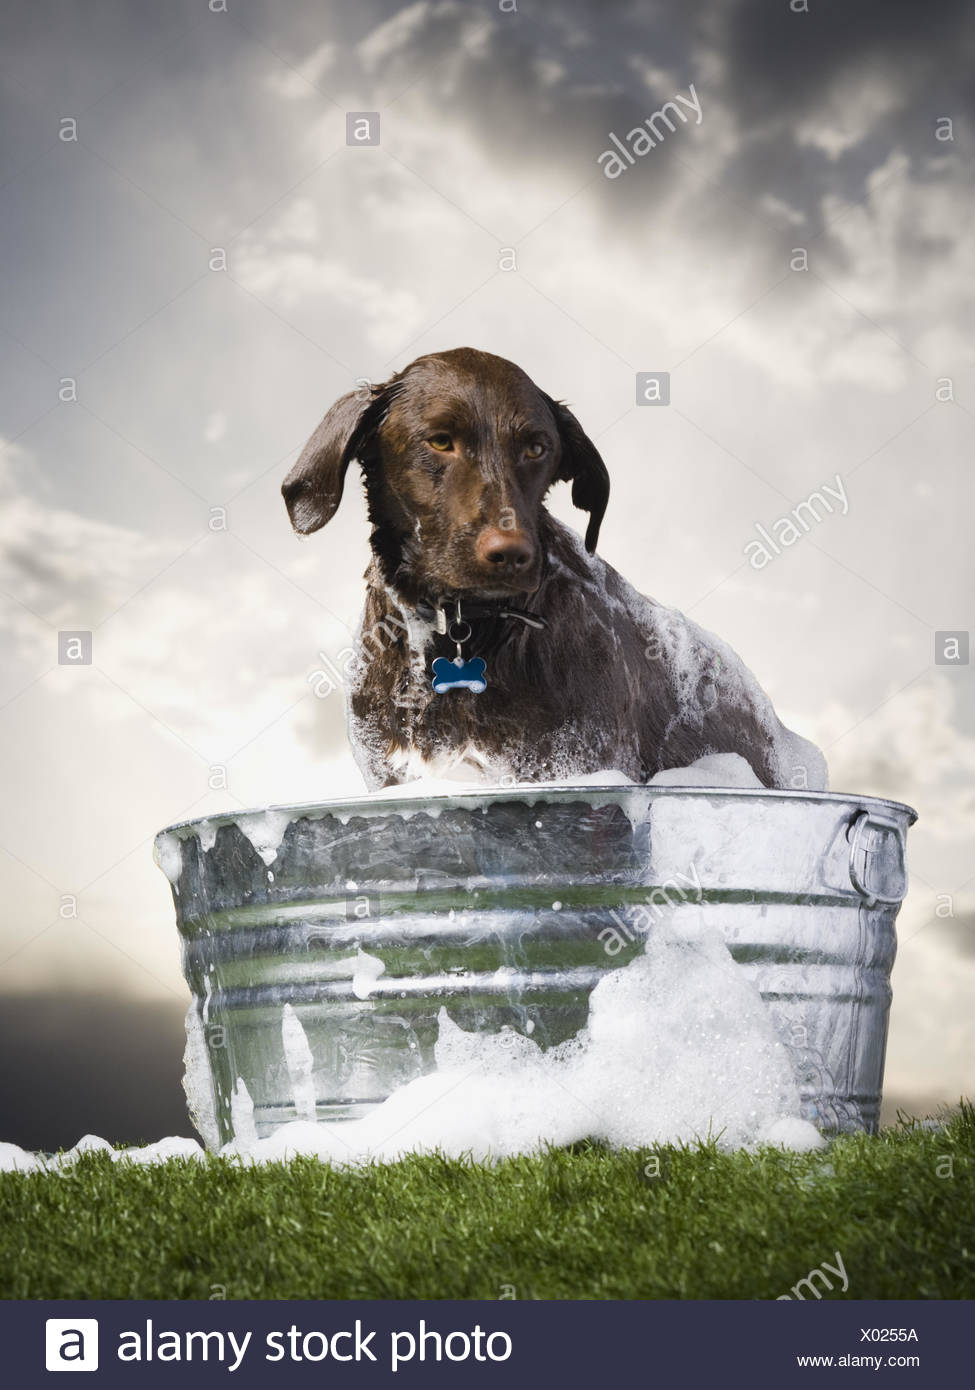 Dog in wash basin with suds outdoors on cloudy day - Stock Image